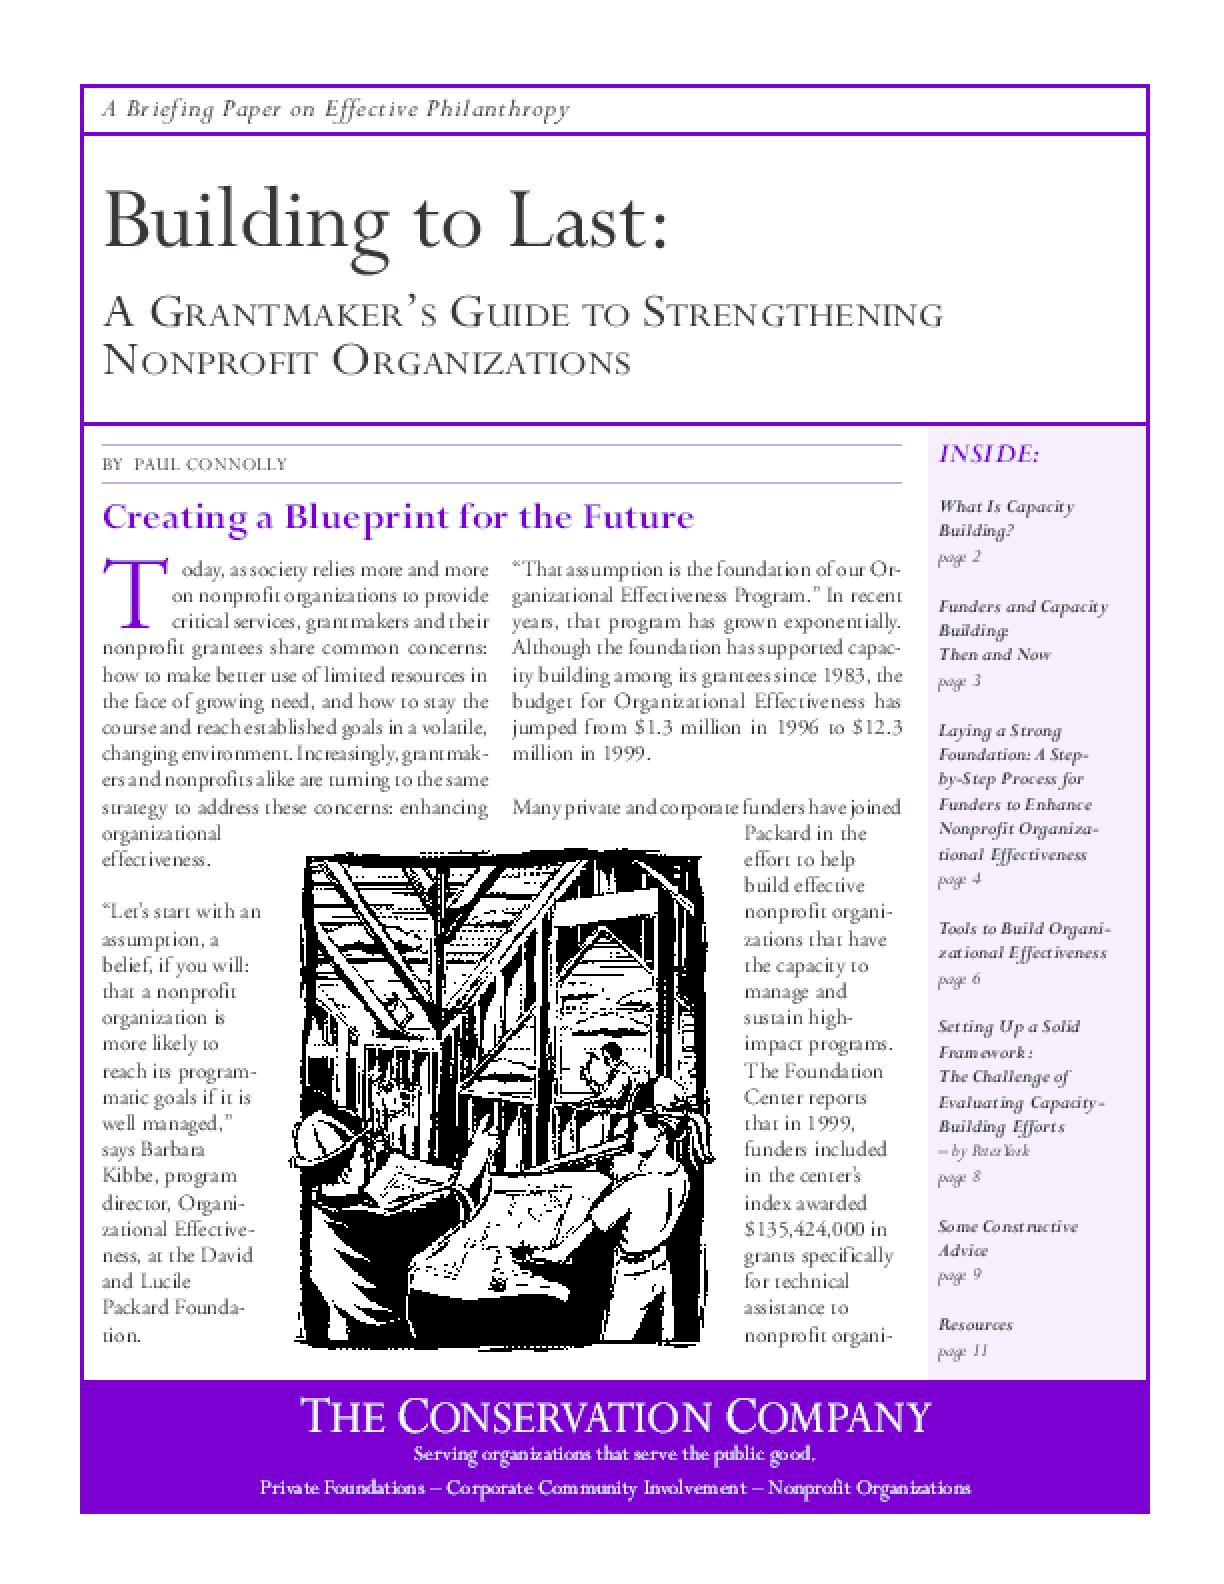 Building to Last: A Grantmaker's Guide to Strengthening Nonprofit Organizations, A Briefing Paper on Effective Philanthropy